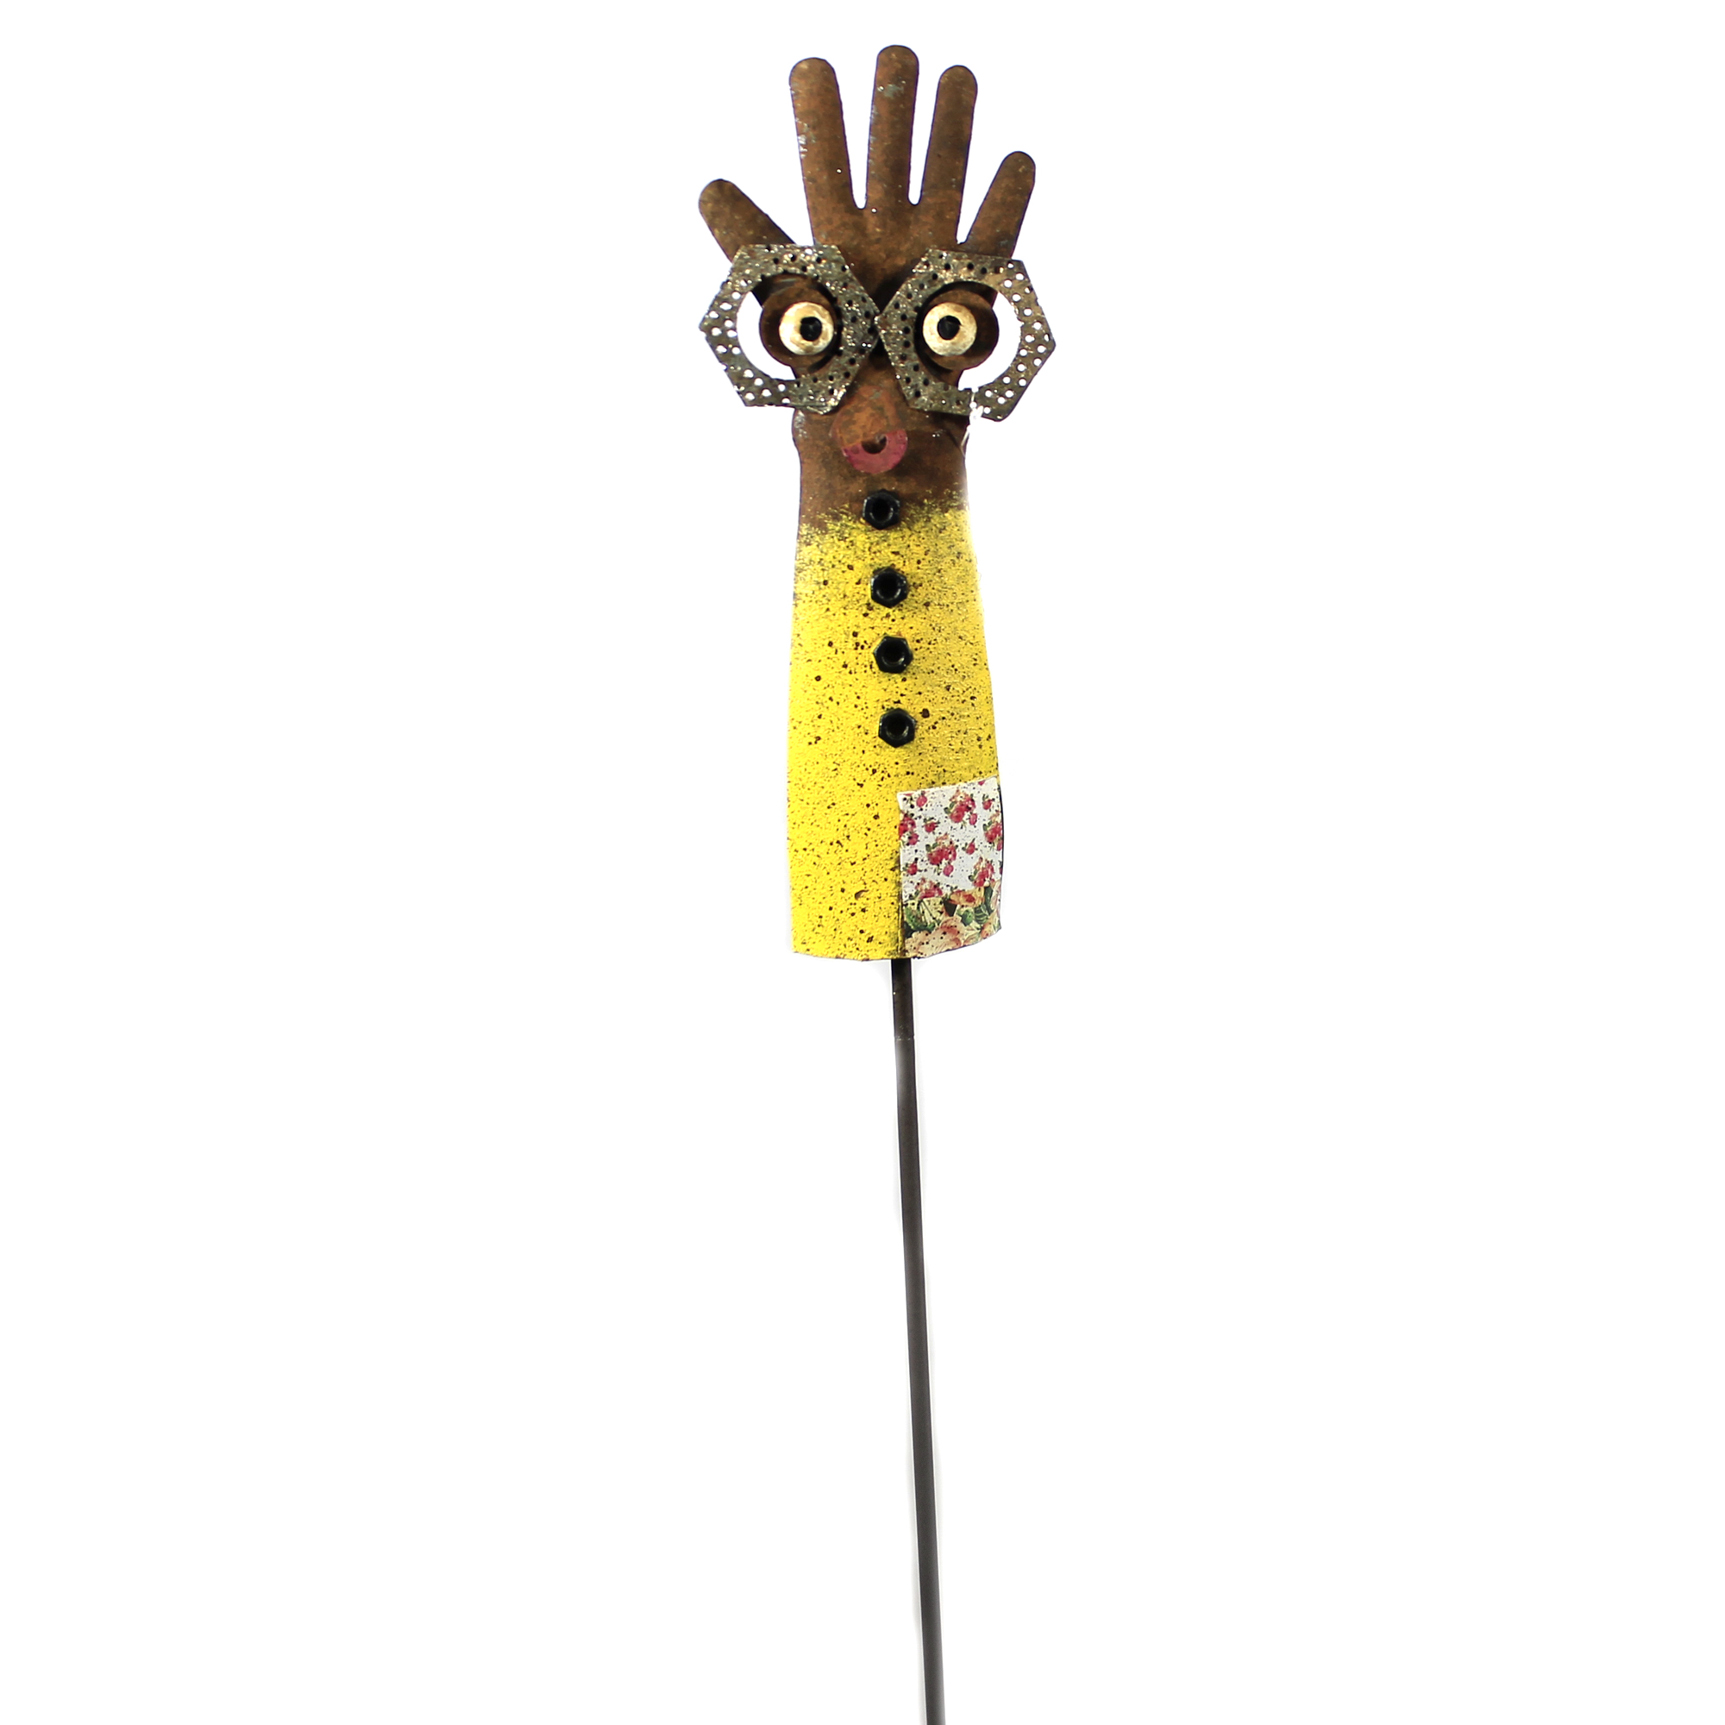 Regal Art  and  Gift 12207 - Yellow Groovy Glove Garden Stake Lawn Decor